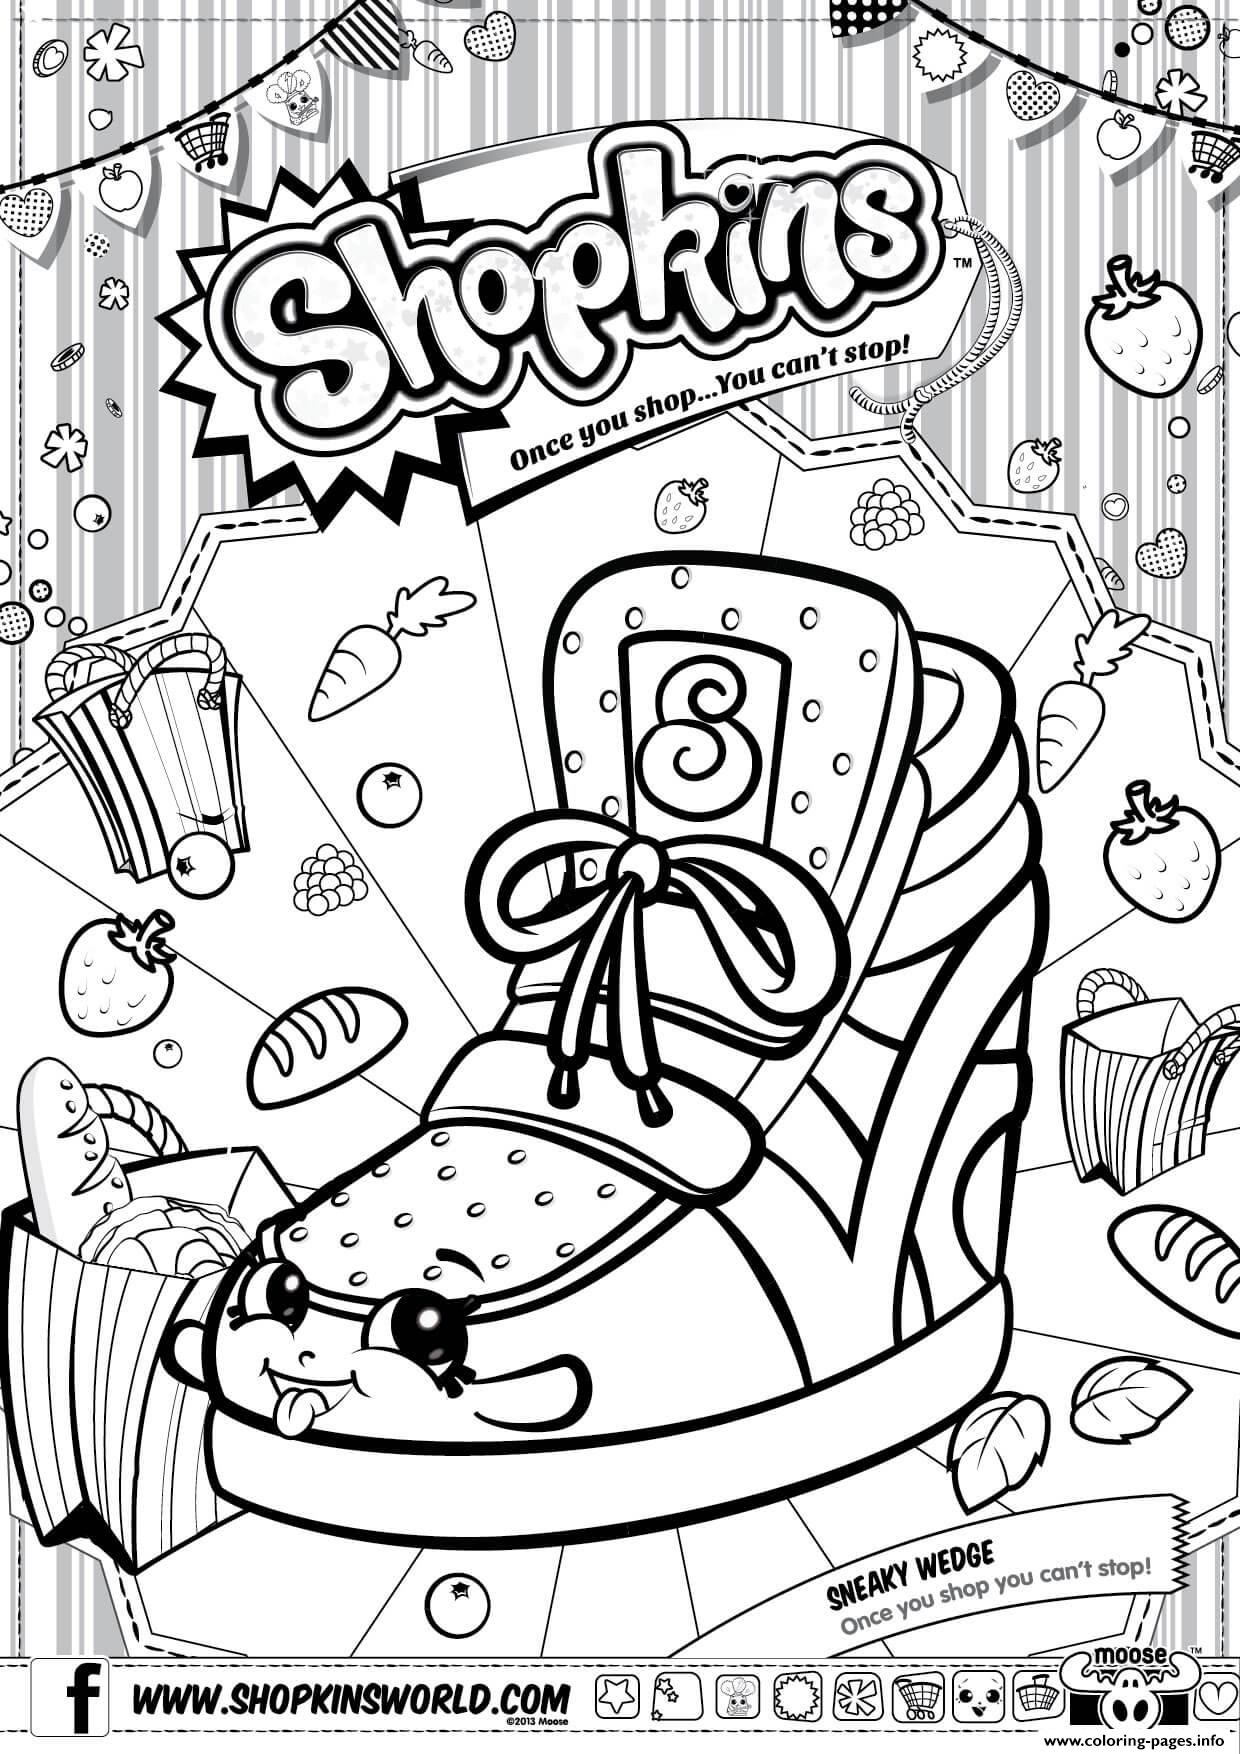 Shopkins Sneaky Wedge Coloring Pages Print Download 371 Prints